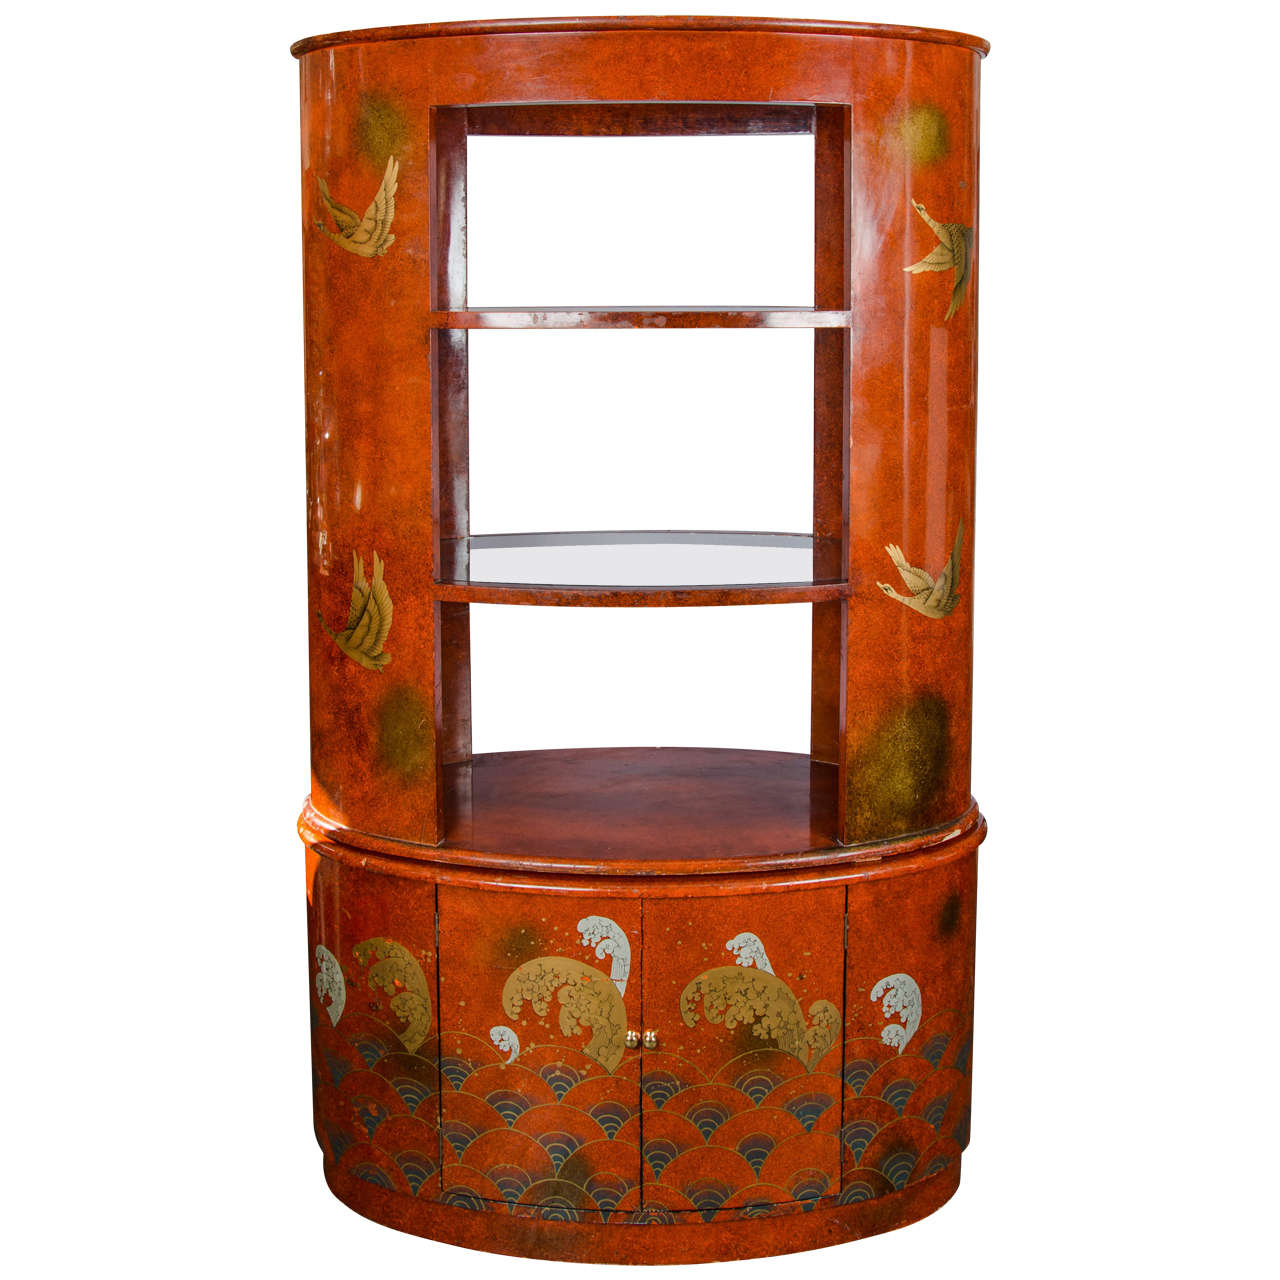 1920s French Display Cabinet or Bar